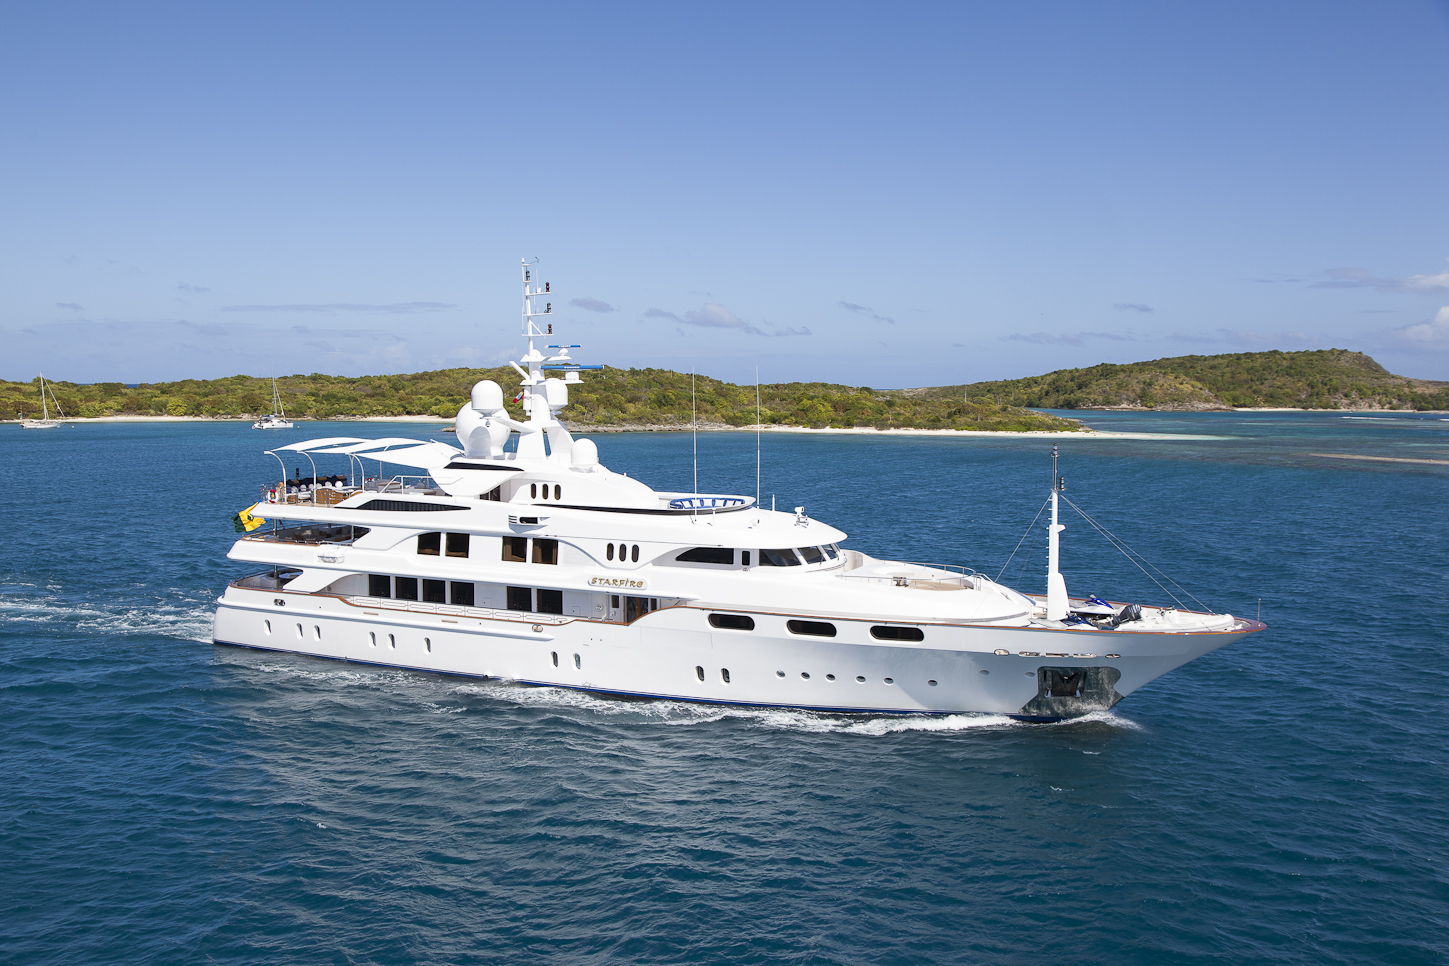 Exceptional Charter Yacht Starfire Is Ready For The Caribbean Yacht Charter Amp Superyacht News